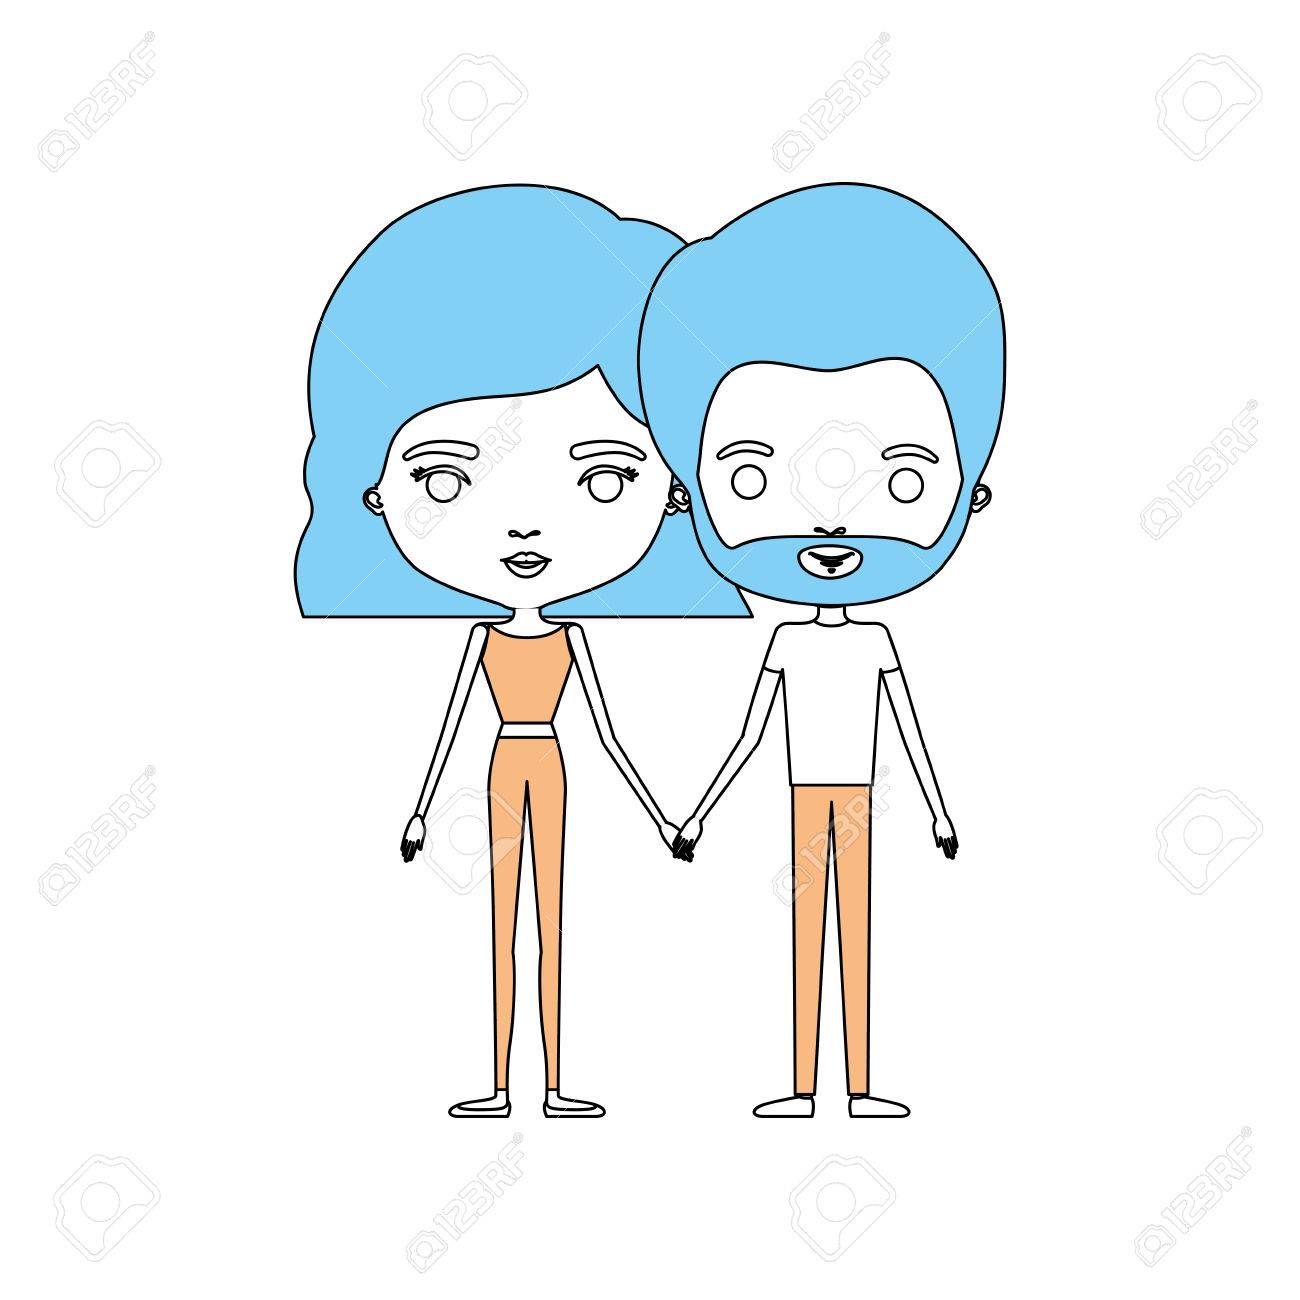 Color Sections Silhouette Caricature Thin Couple In Clothes Of Bearded Man And Woman With Wavy Short